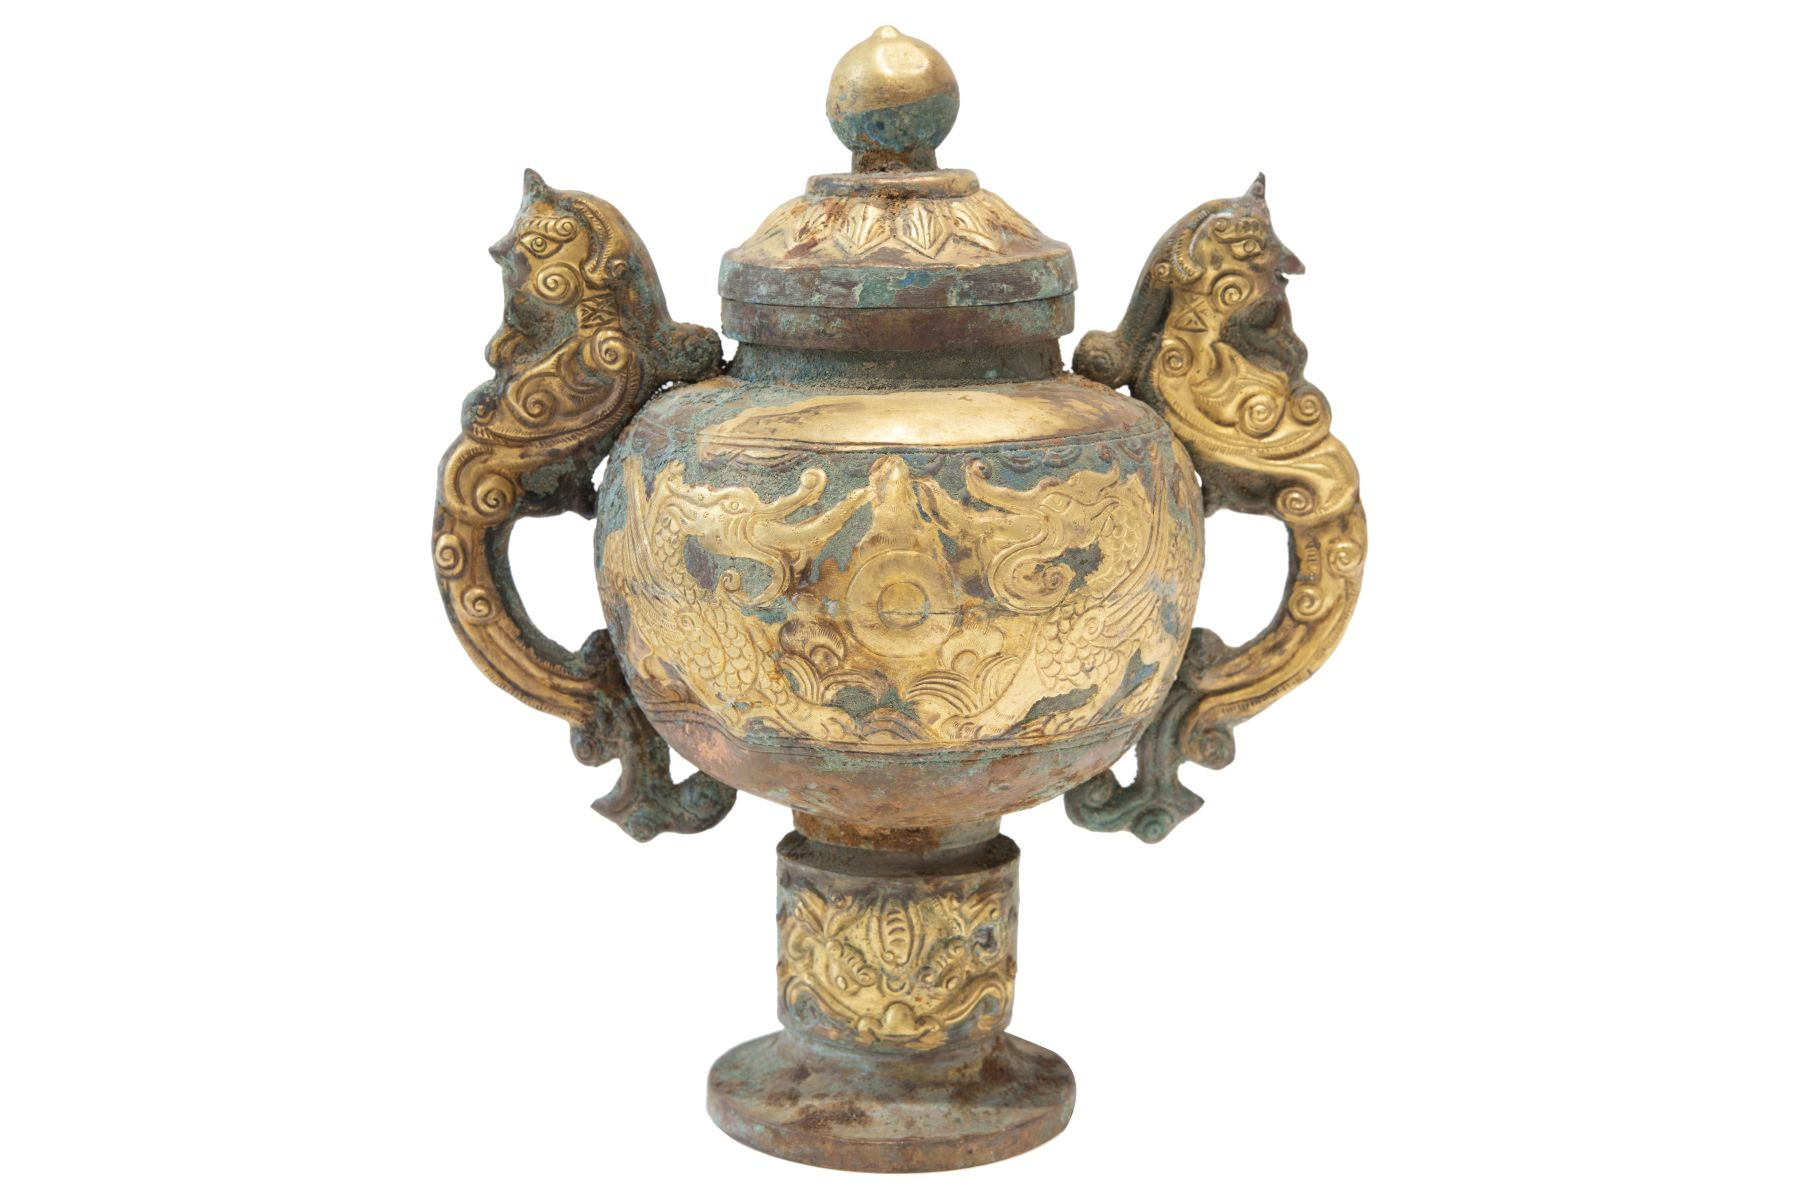 #142 Fire-gilt copper repoussé China, style of the Tang dynasty-presumably dating to the late Qing dynasty | Feuervergoldetes Kupfer Repoussé Gefäß im Stil der Tang Dynastie, vermutlich späte Qing Dynastie Image